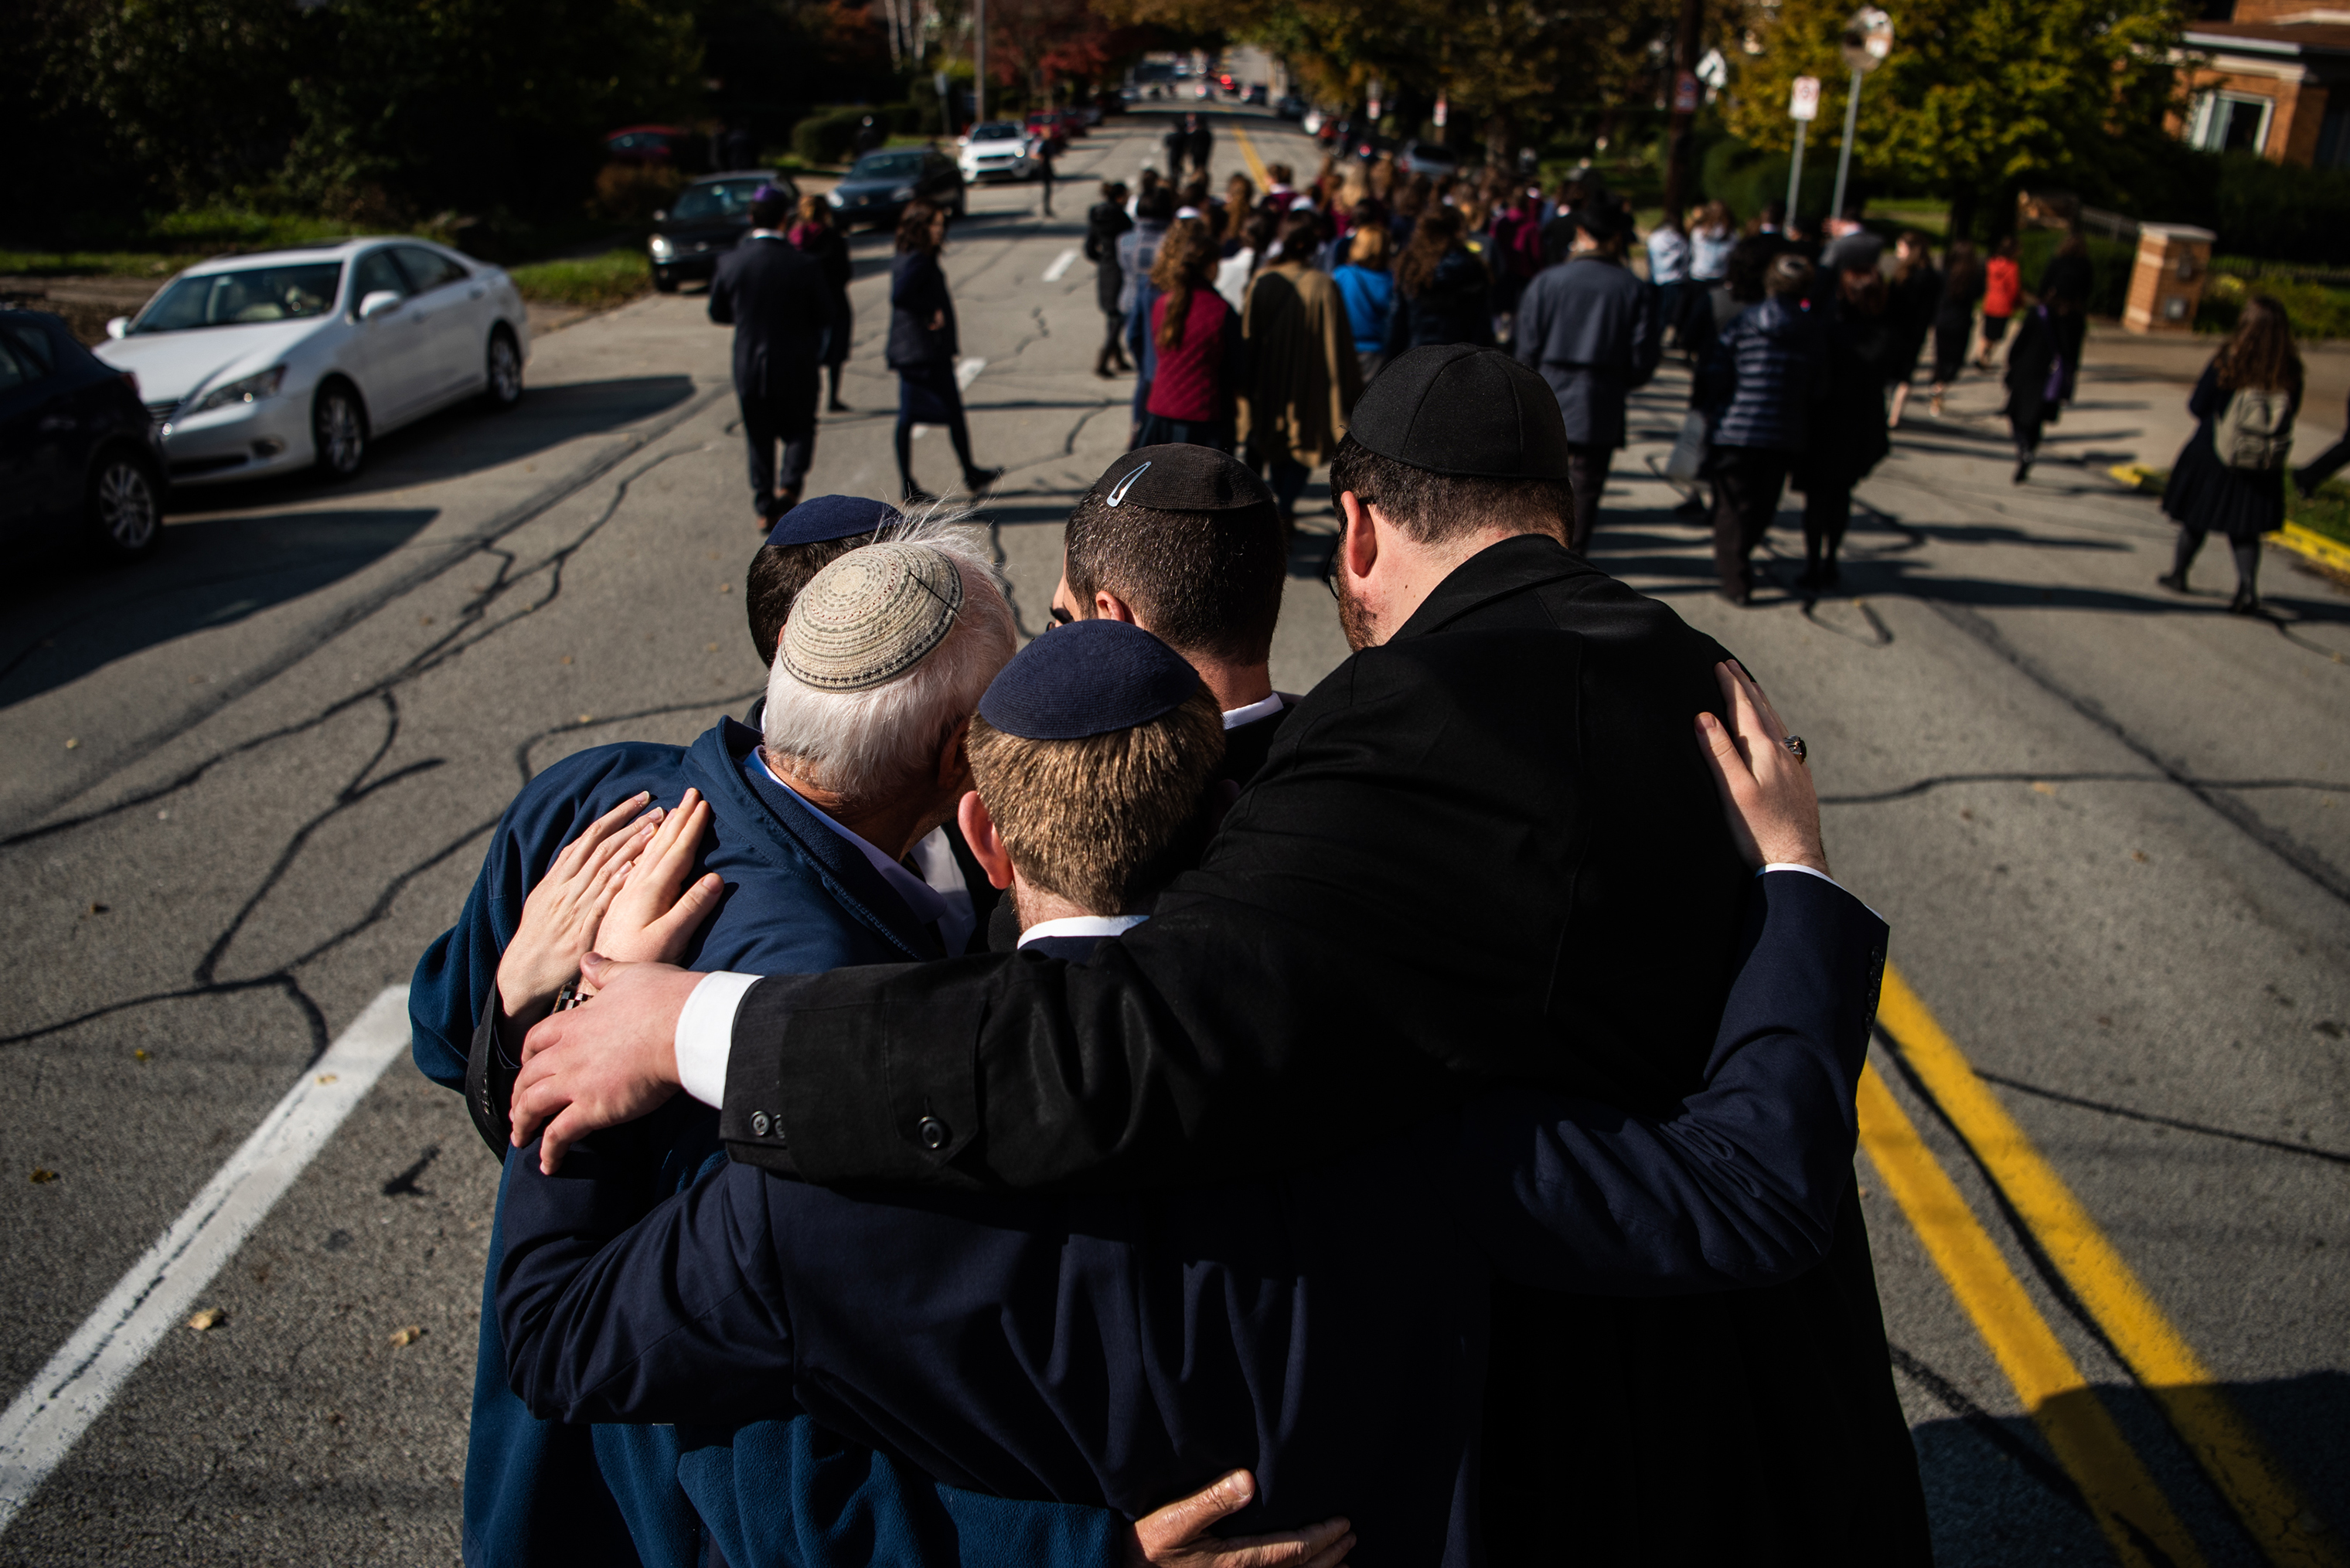 Mourners embrace at the funeral of Joyce Fienberg who was killed at the mass shooting at the Tree of Life Synagogue on Oct. 31, 2018, in Pittsburgh, PA.